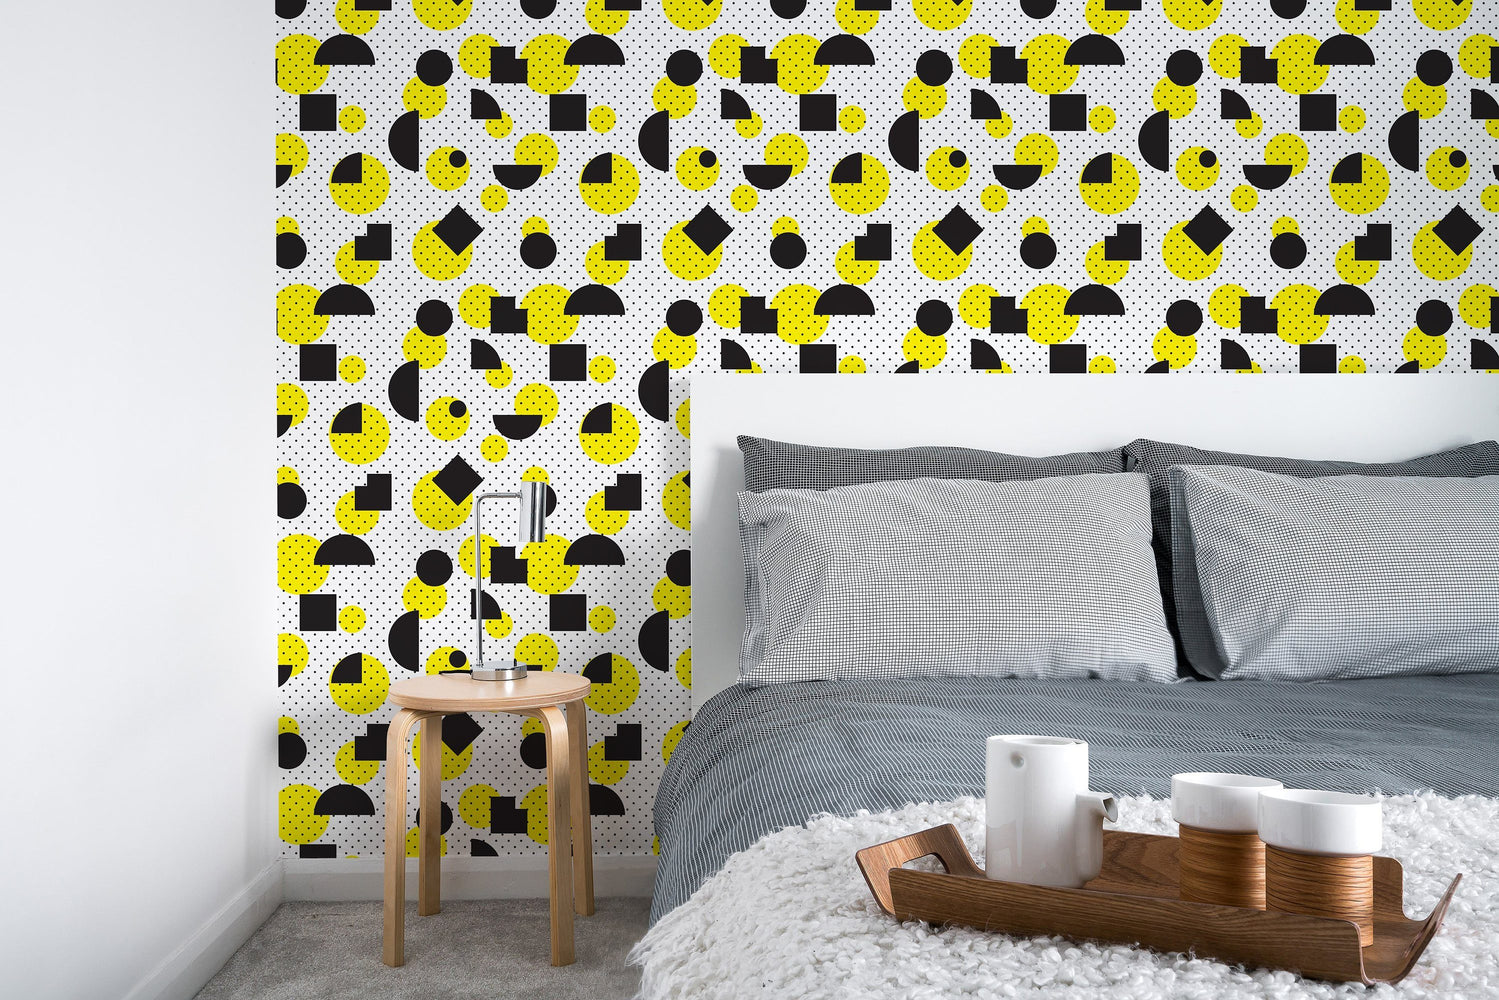 Geometric Wallpaper - Temporary Wallpaper